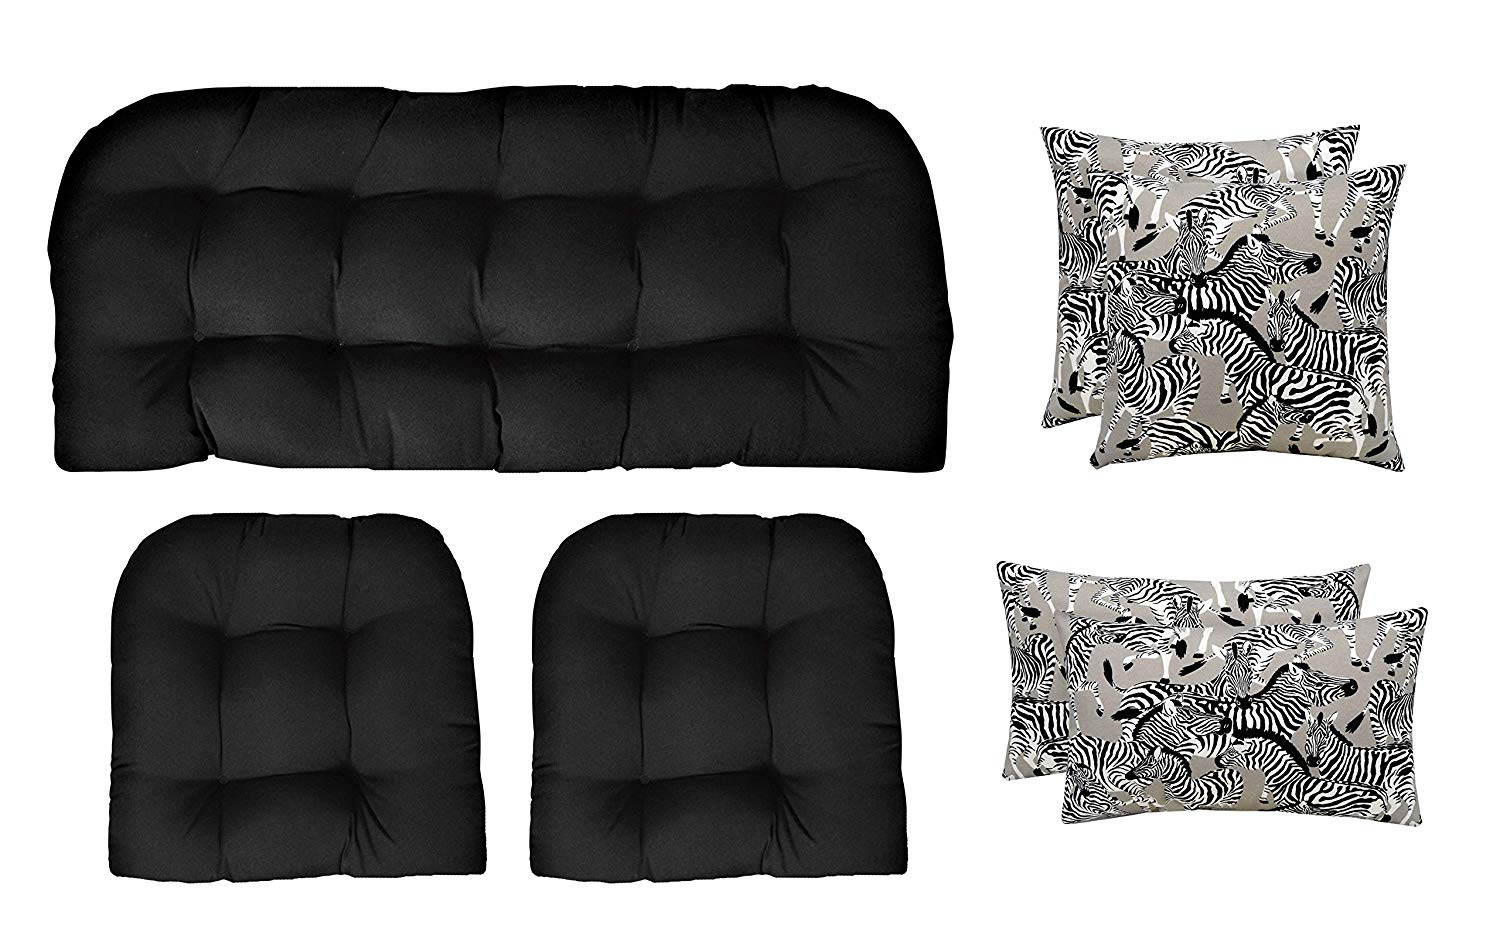 "RSH Décor Indoor Outdoor Wicker Tufted 7 Piece Set 1 Loveseat Settee, 2 Chair Cushions 2 Square & 2 Lumbar Pillows - Black & White Zebra & Black (41"" W x 19"" D & 19""W x 19""D + 20"" W x 12"" H & 17"" Sq)"